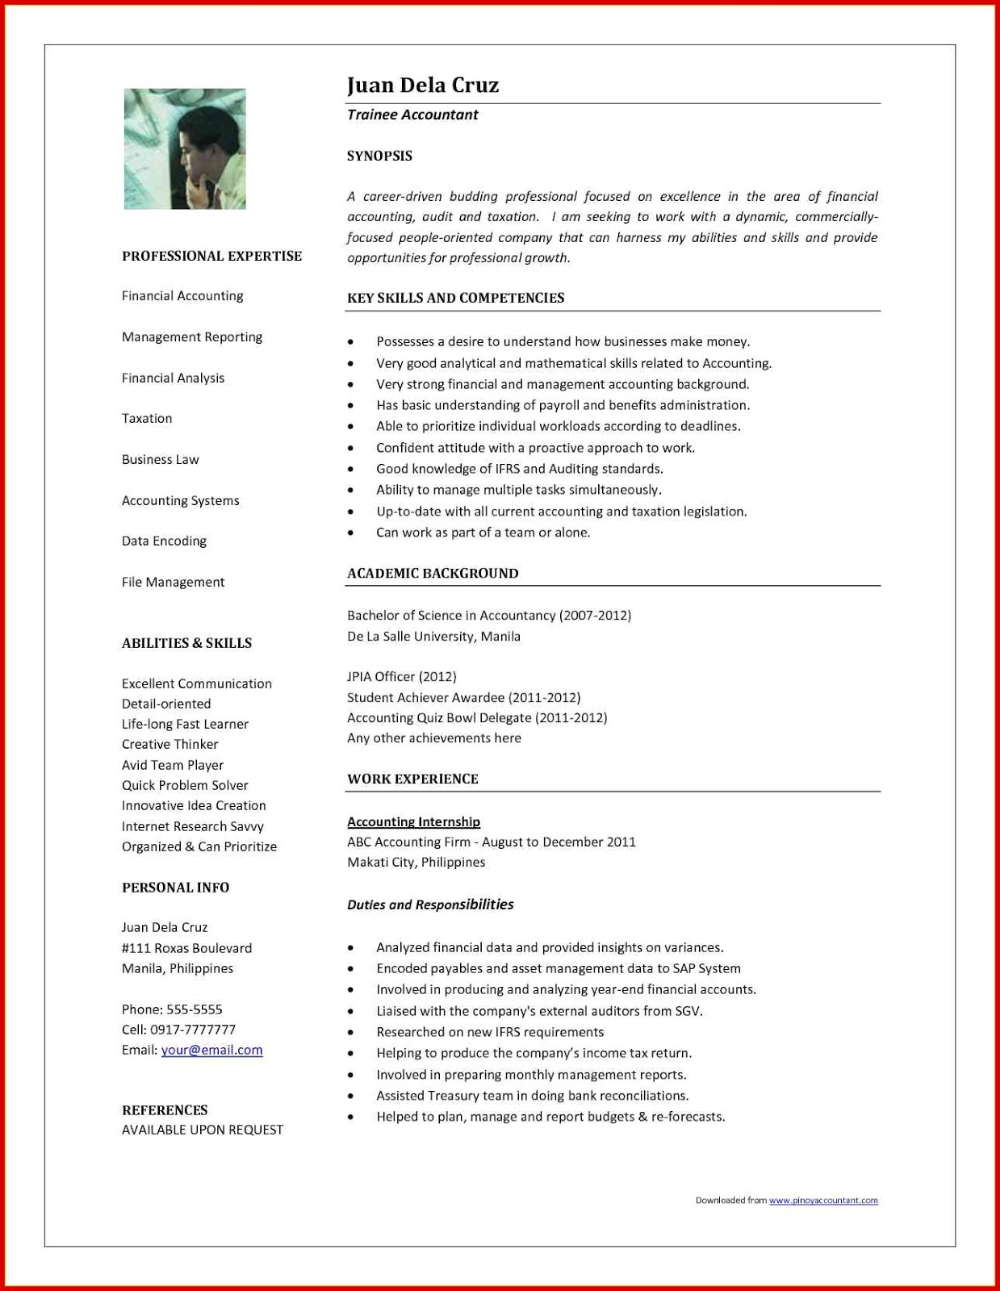 Accountant Resume Format 2019 2020 In 2020 Business Letter